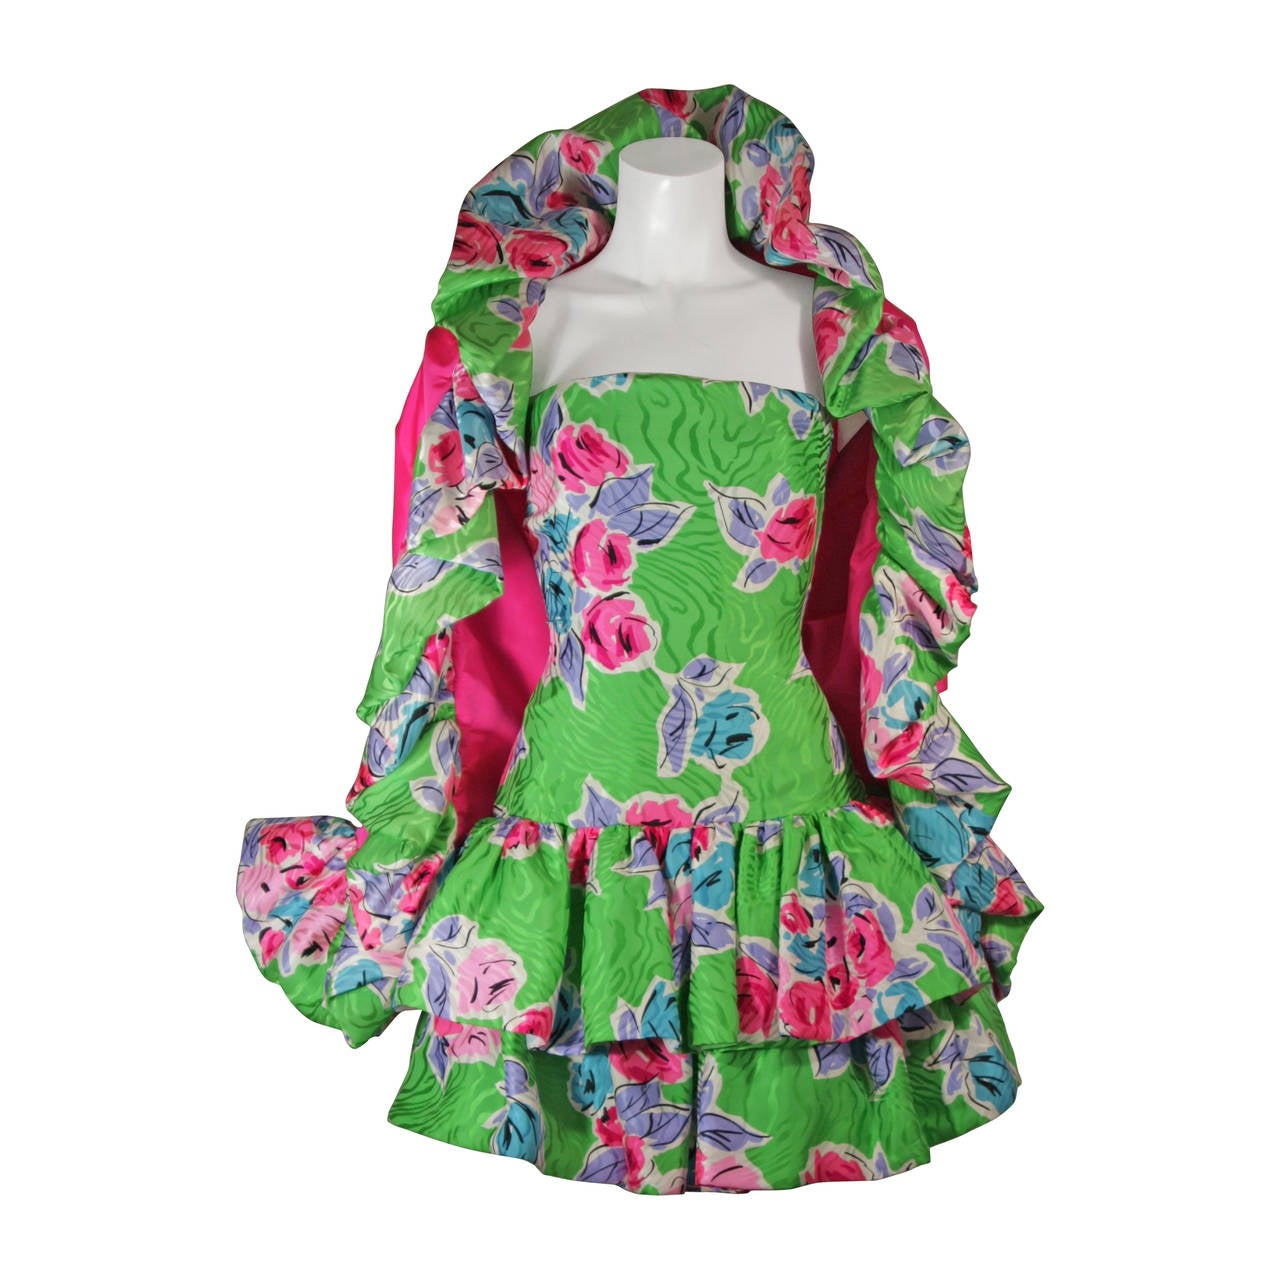 Scassi Green Tropical Silk Cocktail Dress & Hot Pink Contrast Ruffle Wrap Size 4